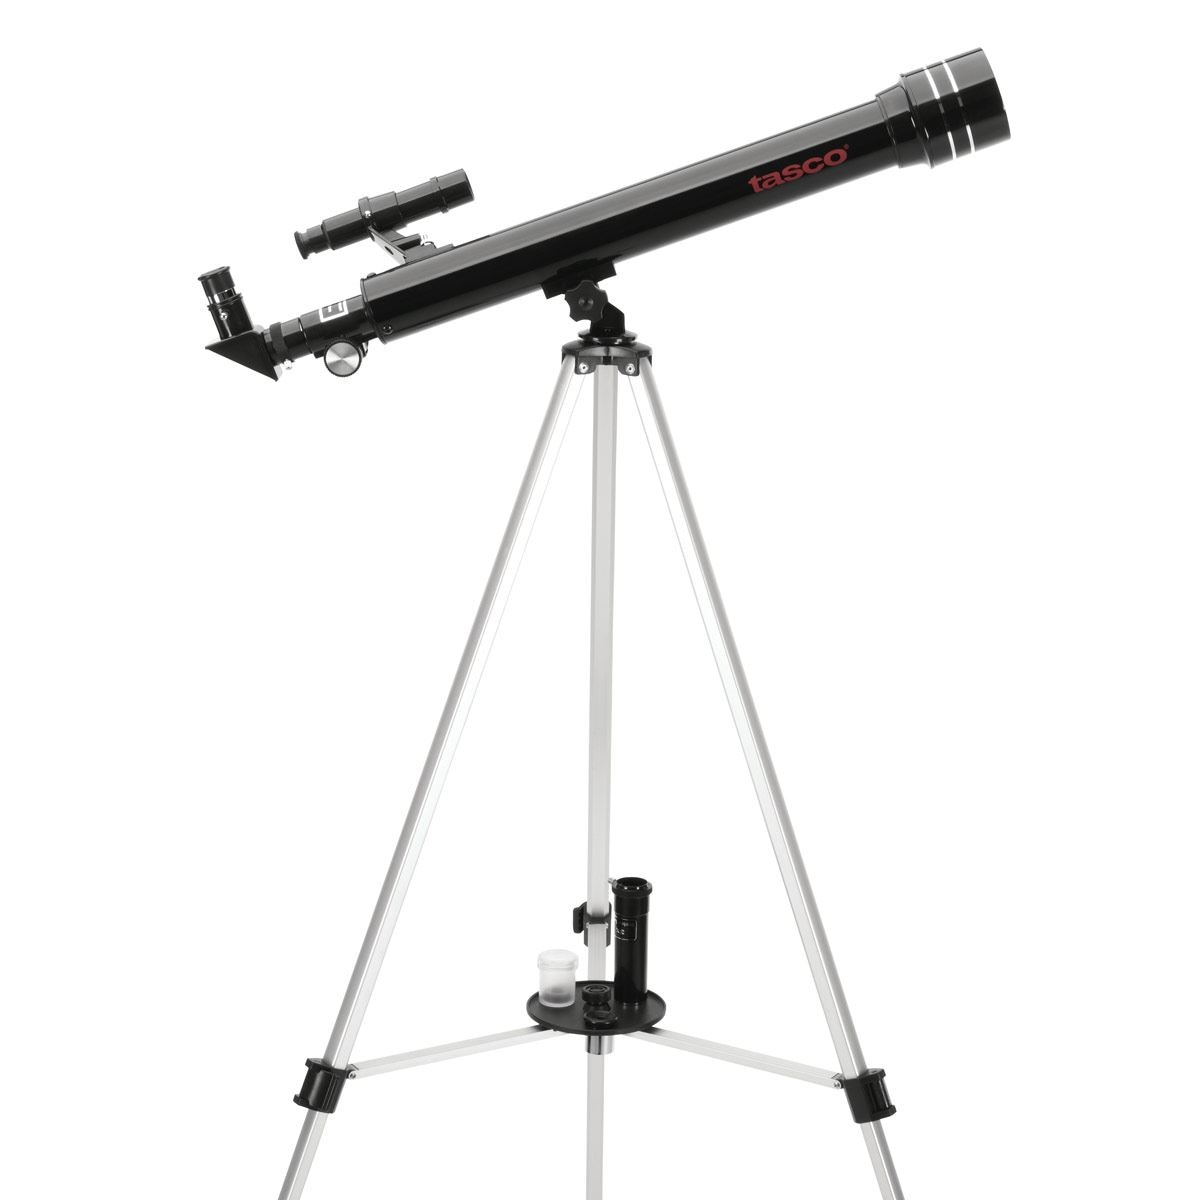 Telescopio Tasco 50X600mm novice black